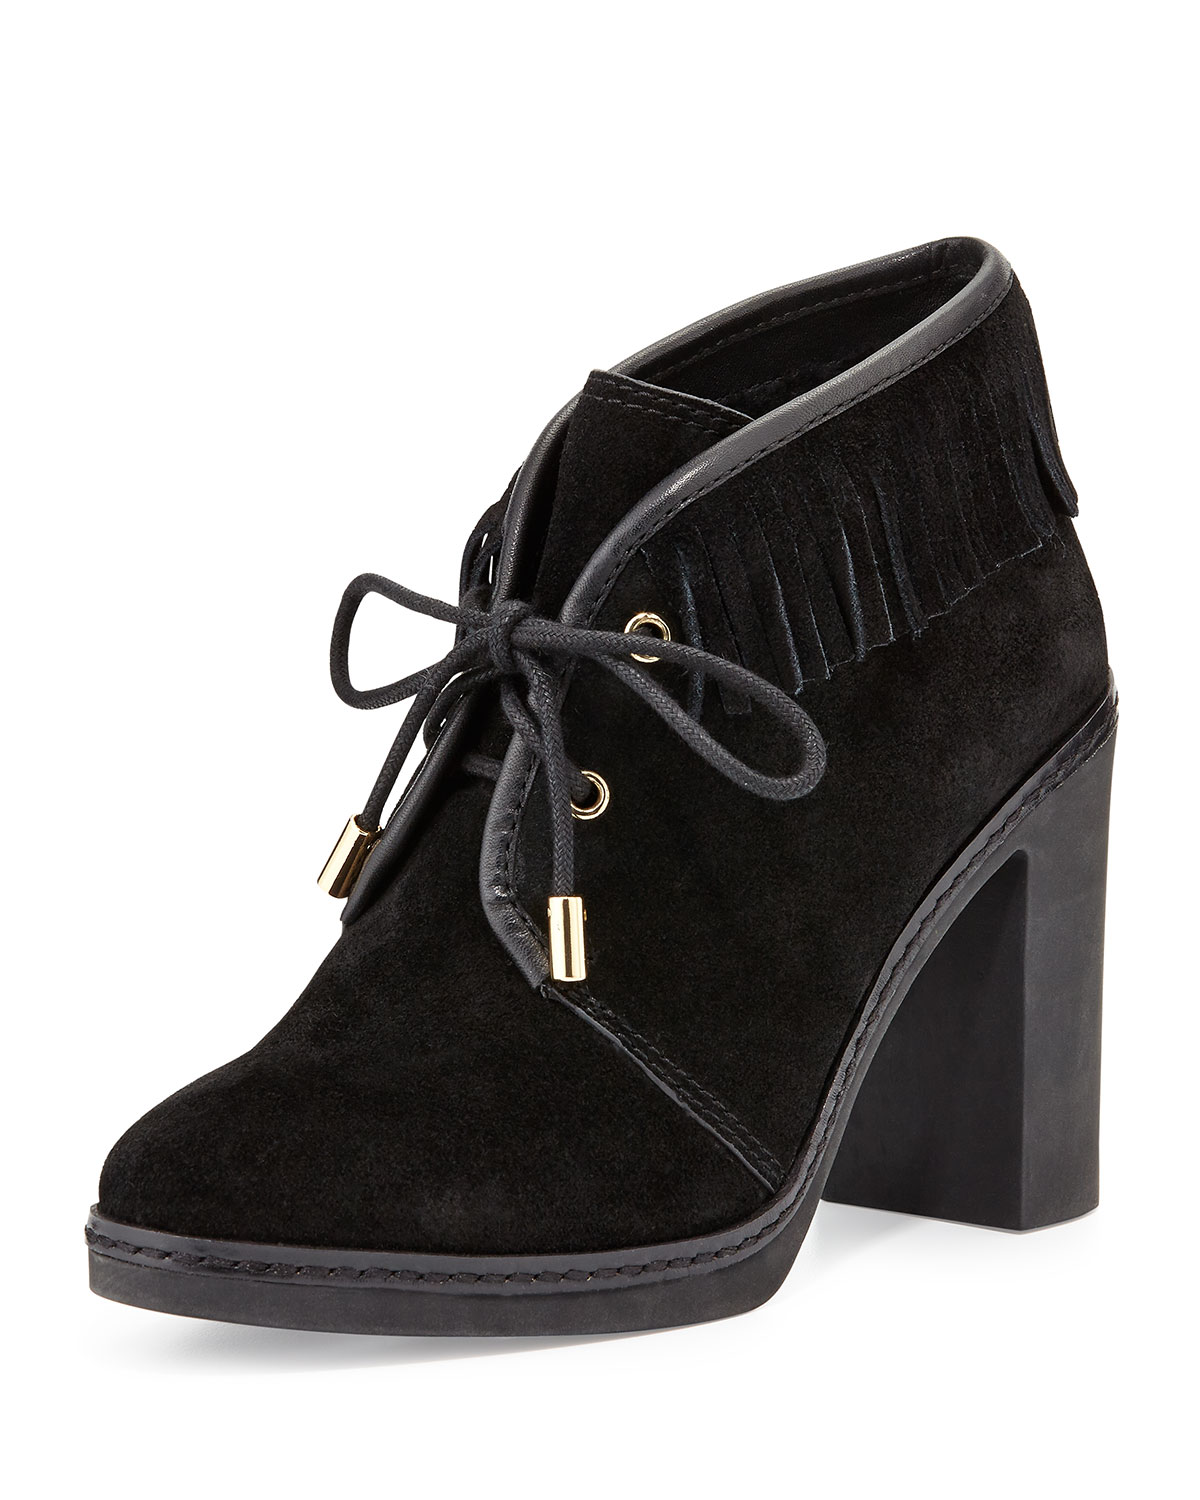 7e5137605cb Tory Burch Hilary Shearling-Lined Fringe Bootie